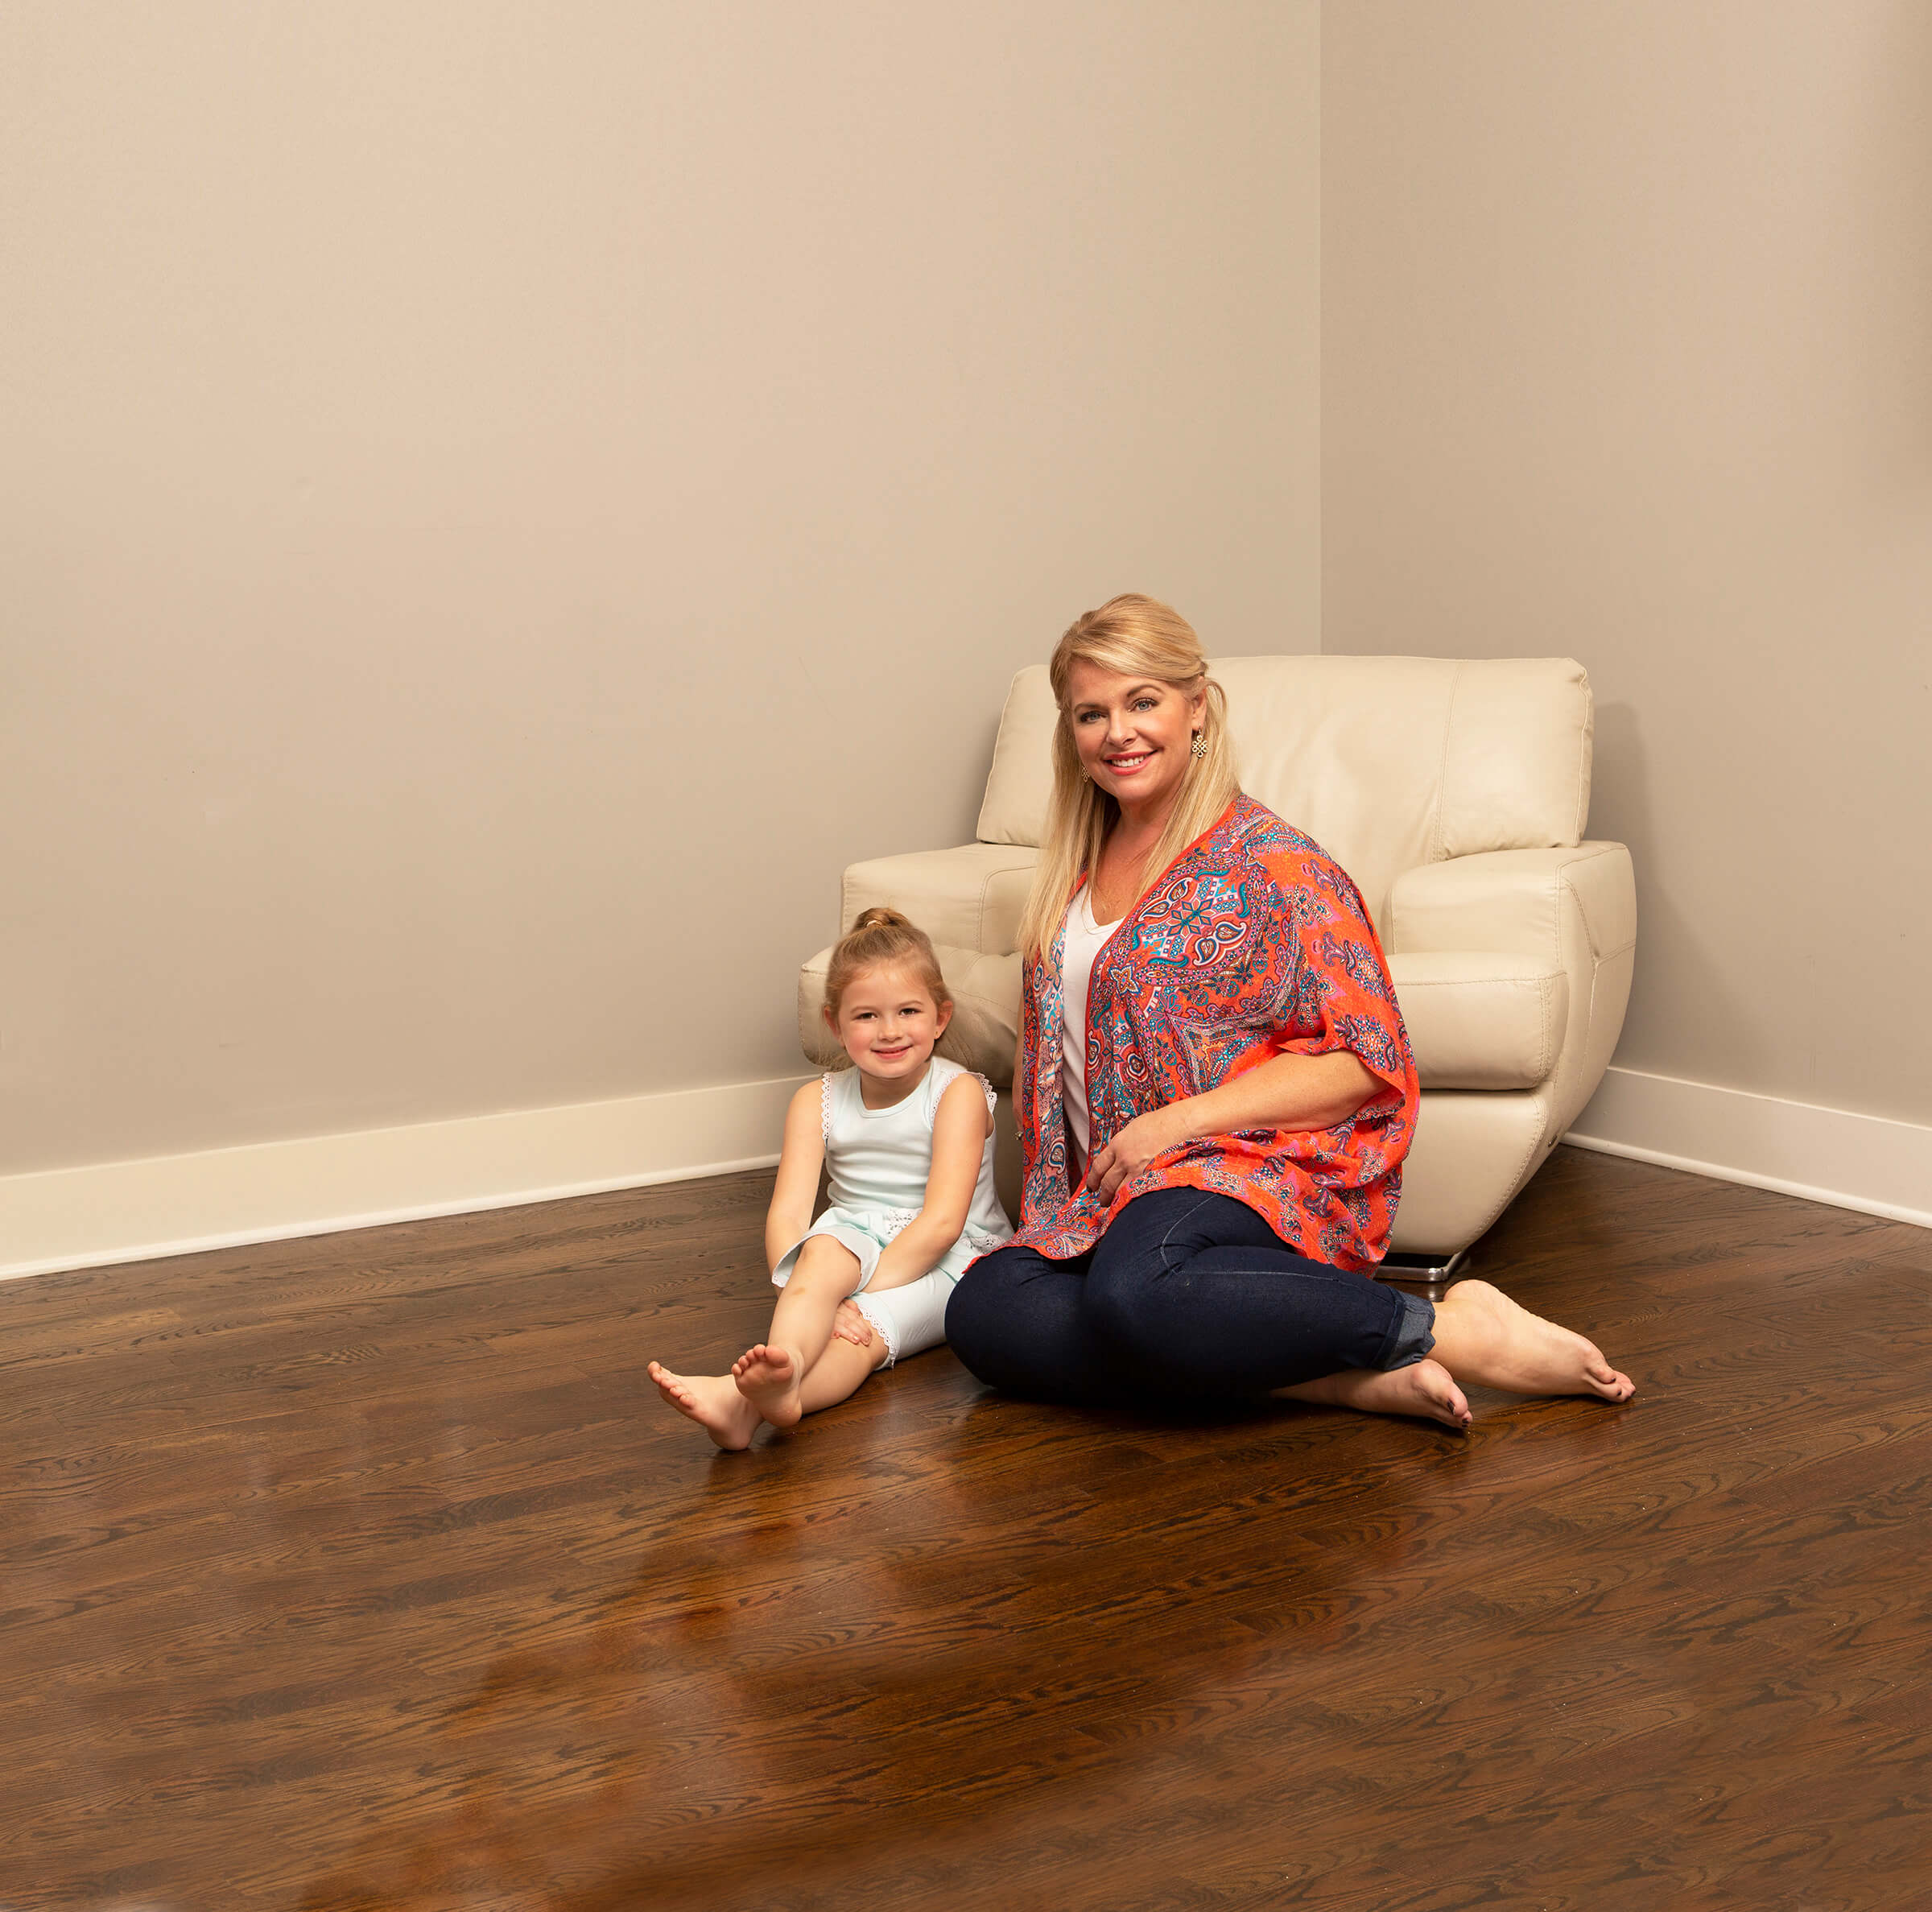 mother and daughter sitting on wood floor in gastonia home